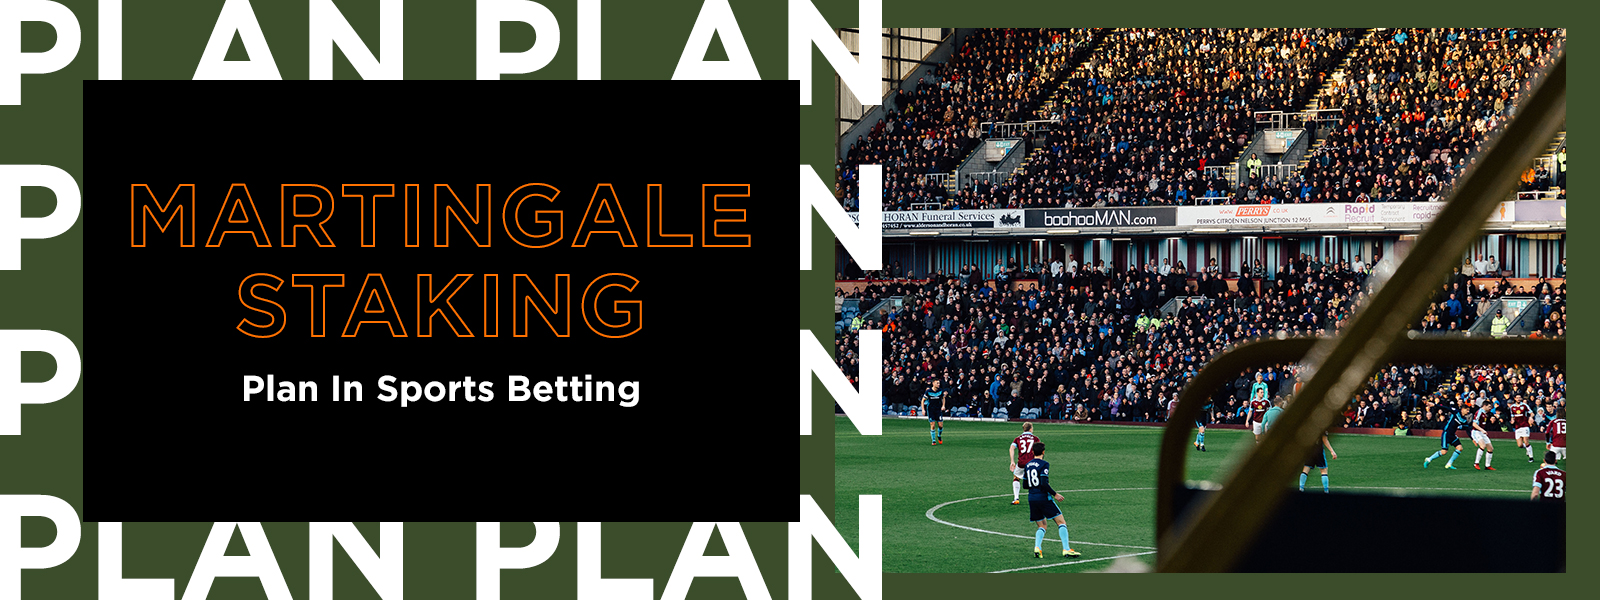 Martingale Betting System In Sports Betting